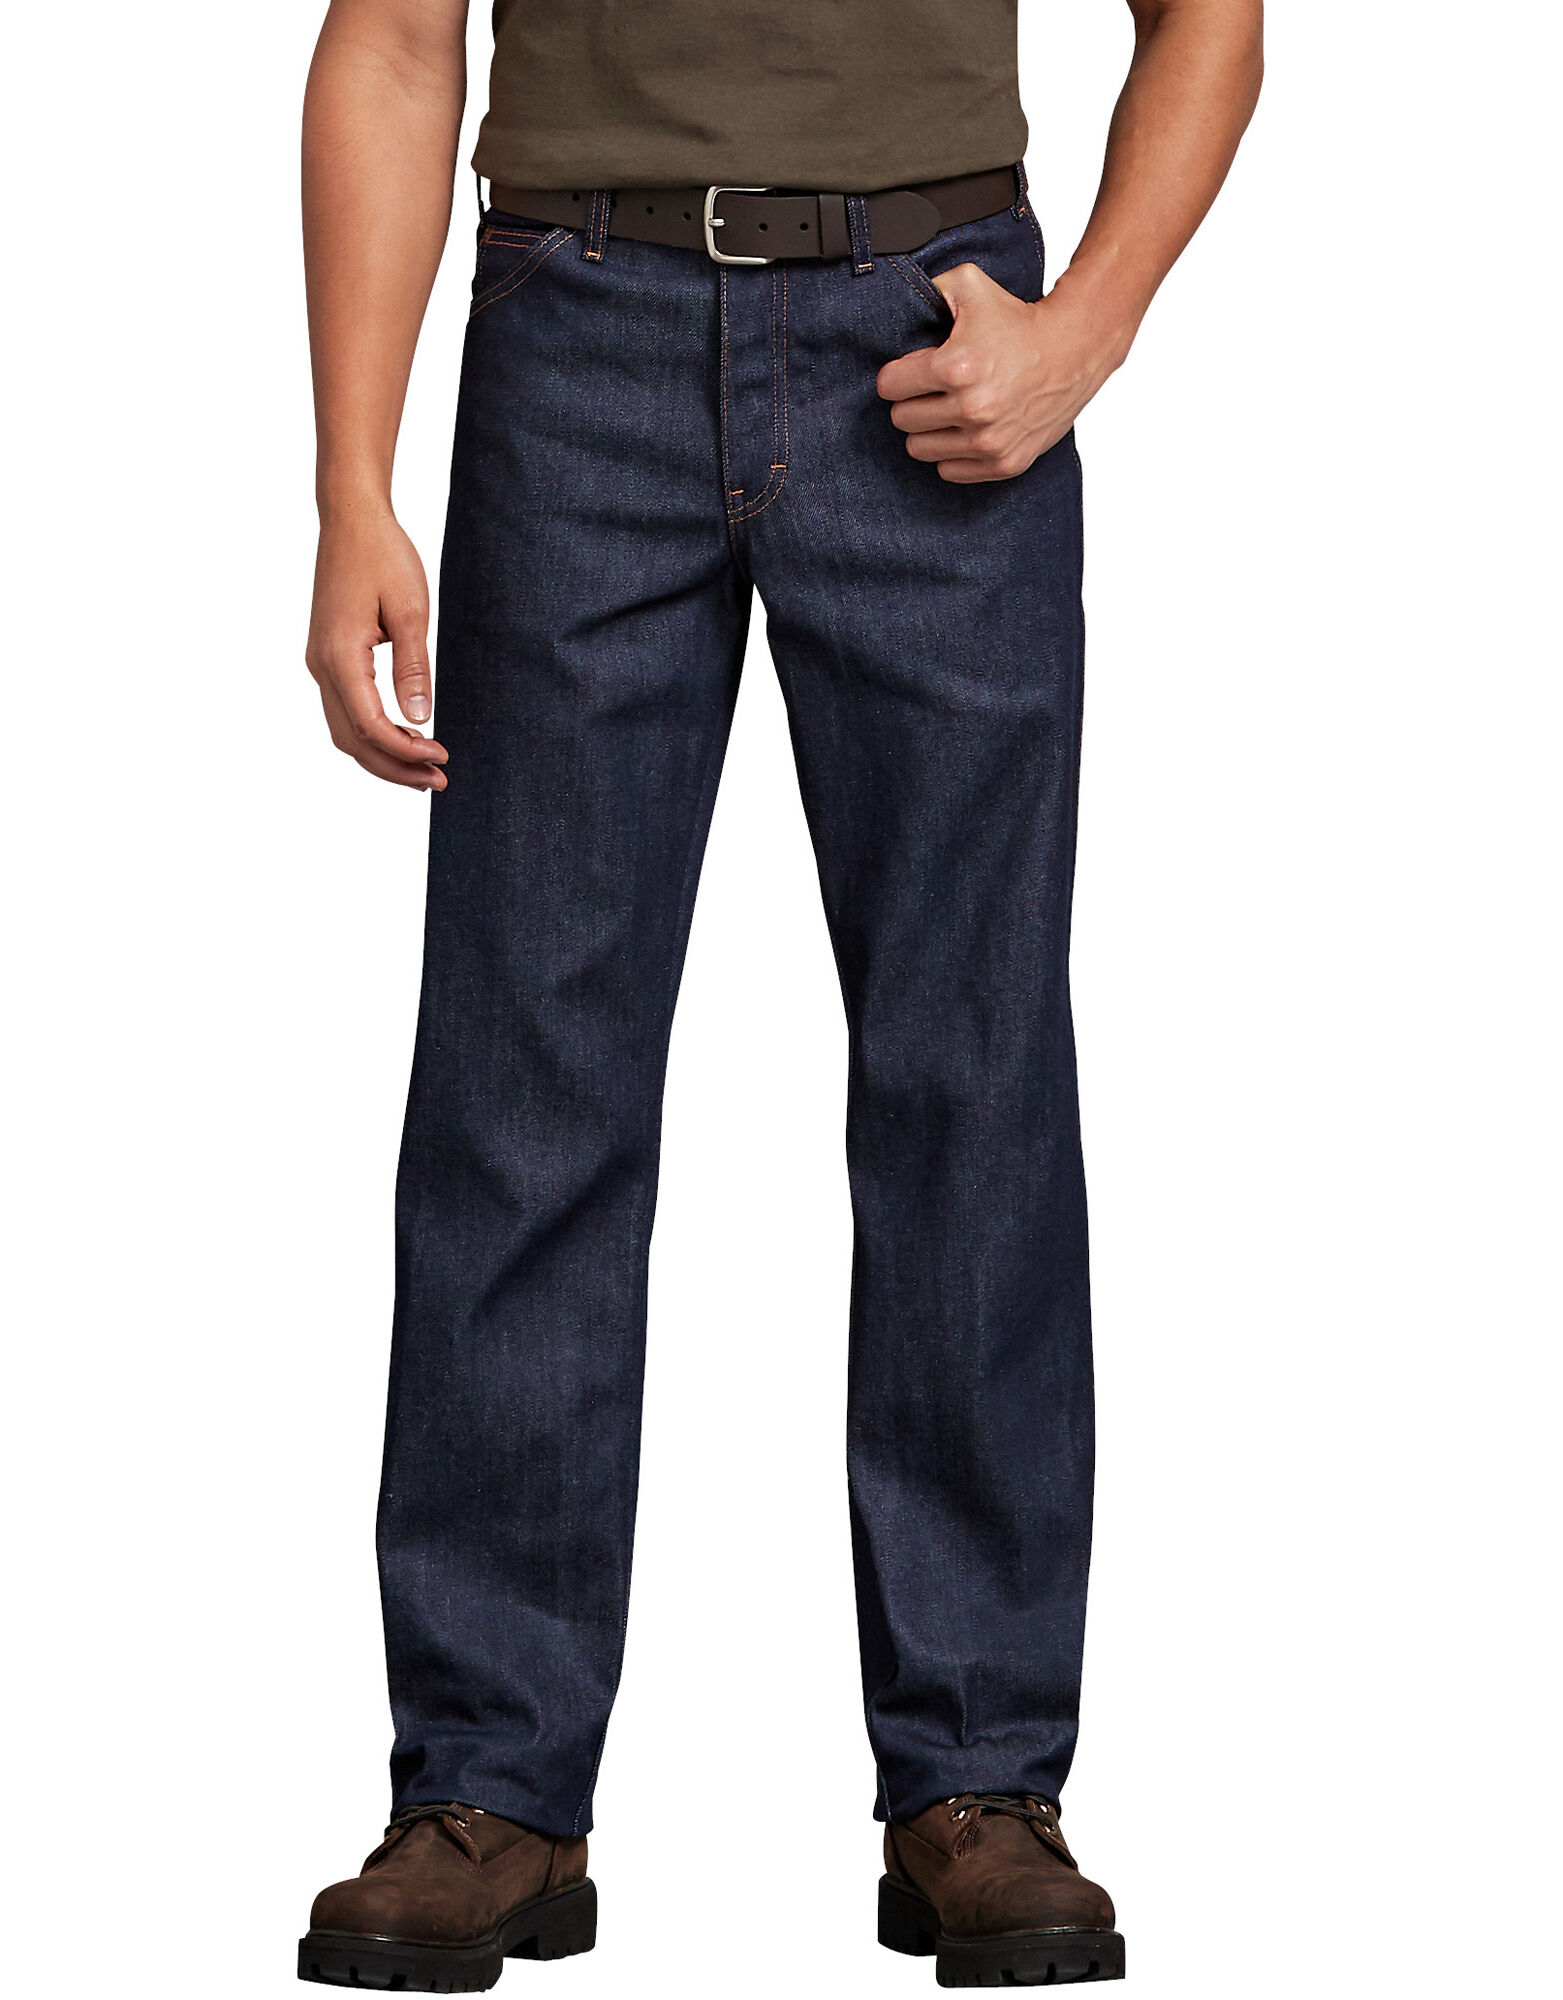 Regular Fit Jeans for Men | Dickies